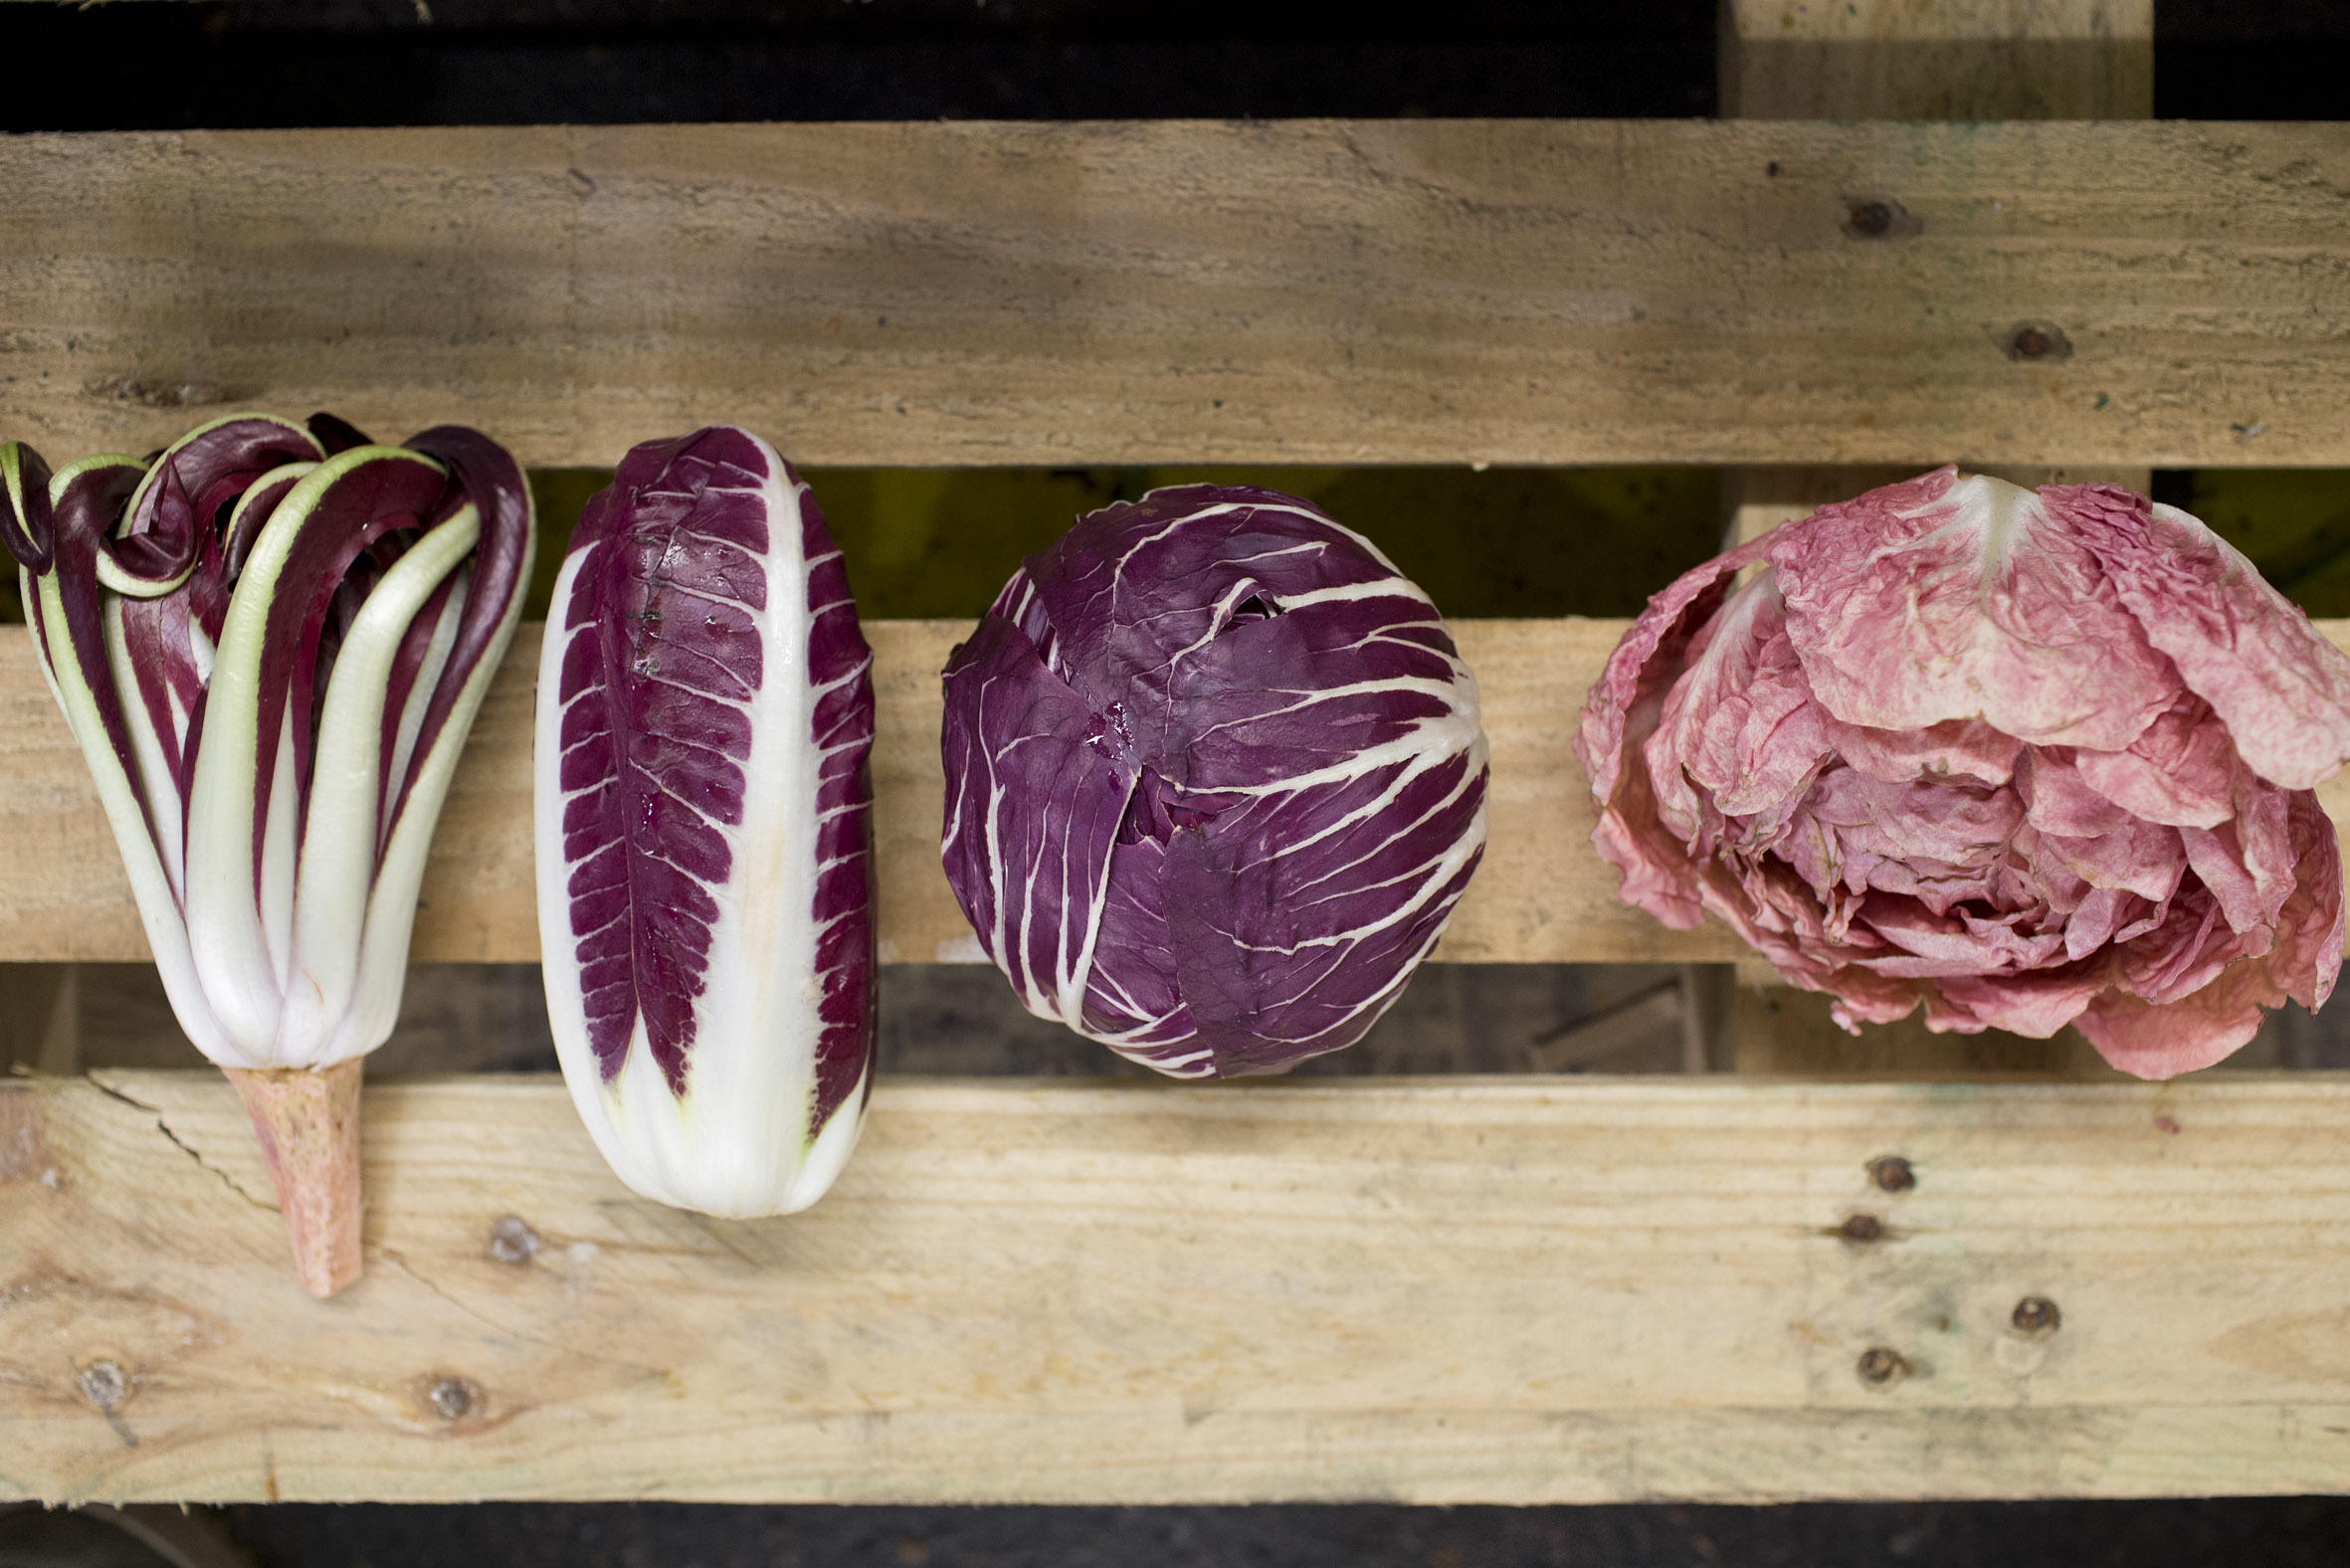 fruit-and-vegetable-market-report-march-2014-radicchio.jpg?mtime=20170922112646#asset:11332